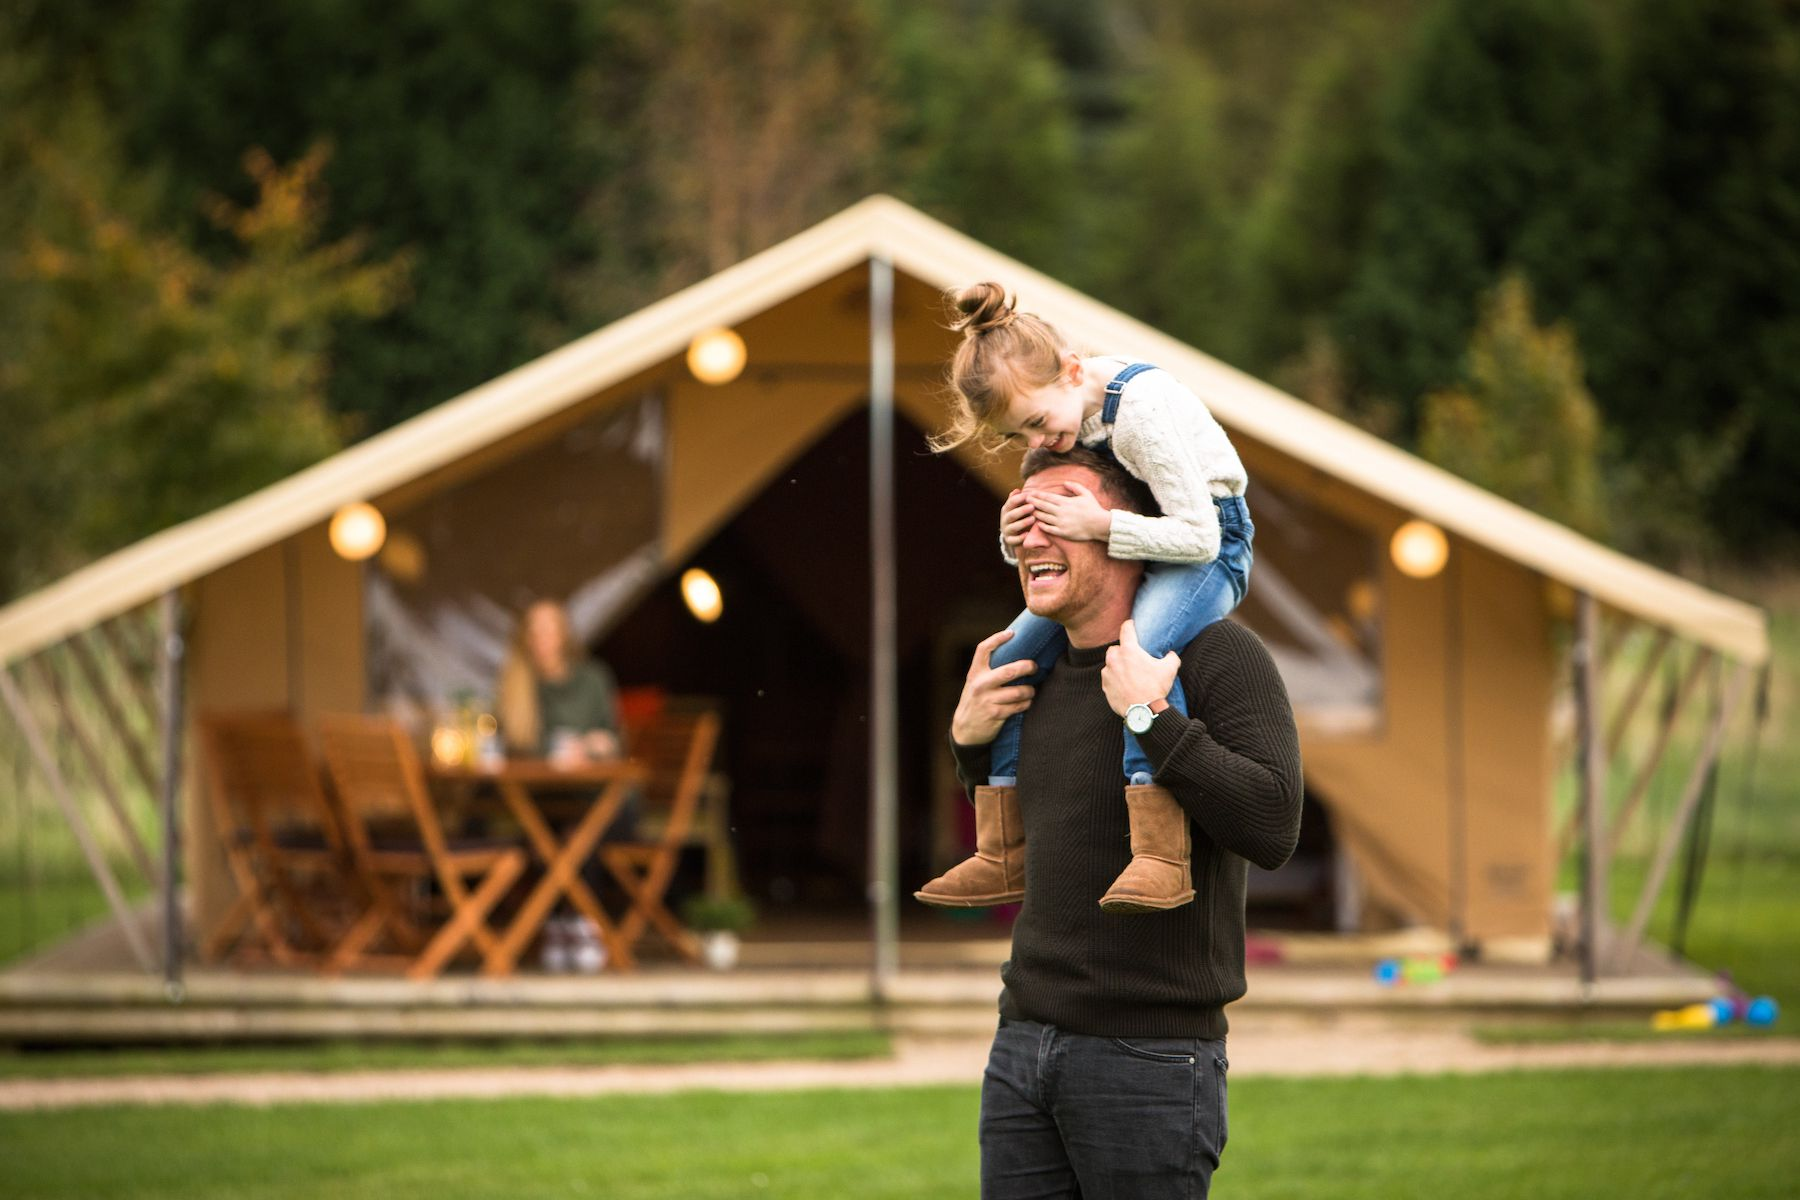 Ready Camp Glamping Sites in the UK